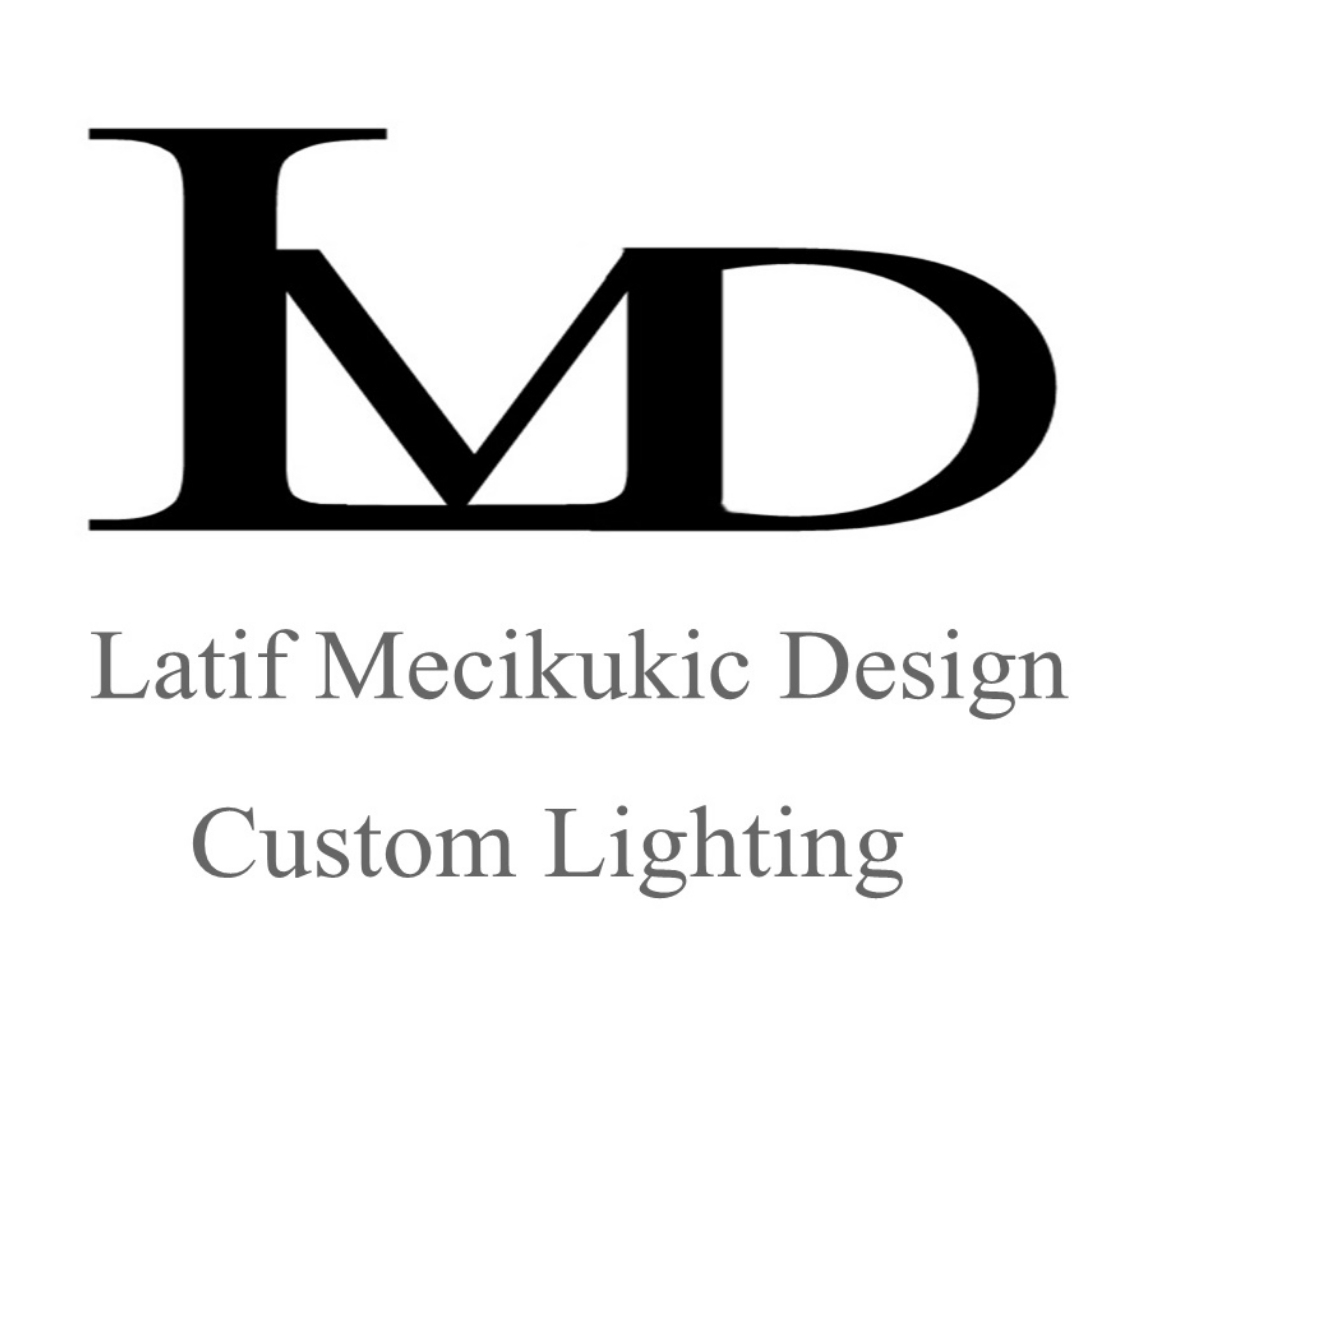 Latif Mecikukic Design